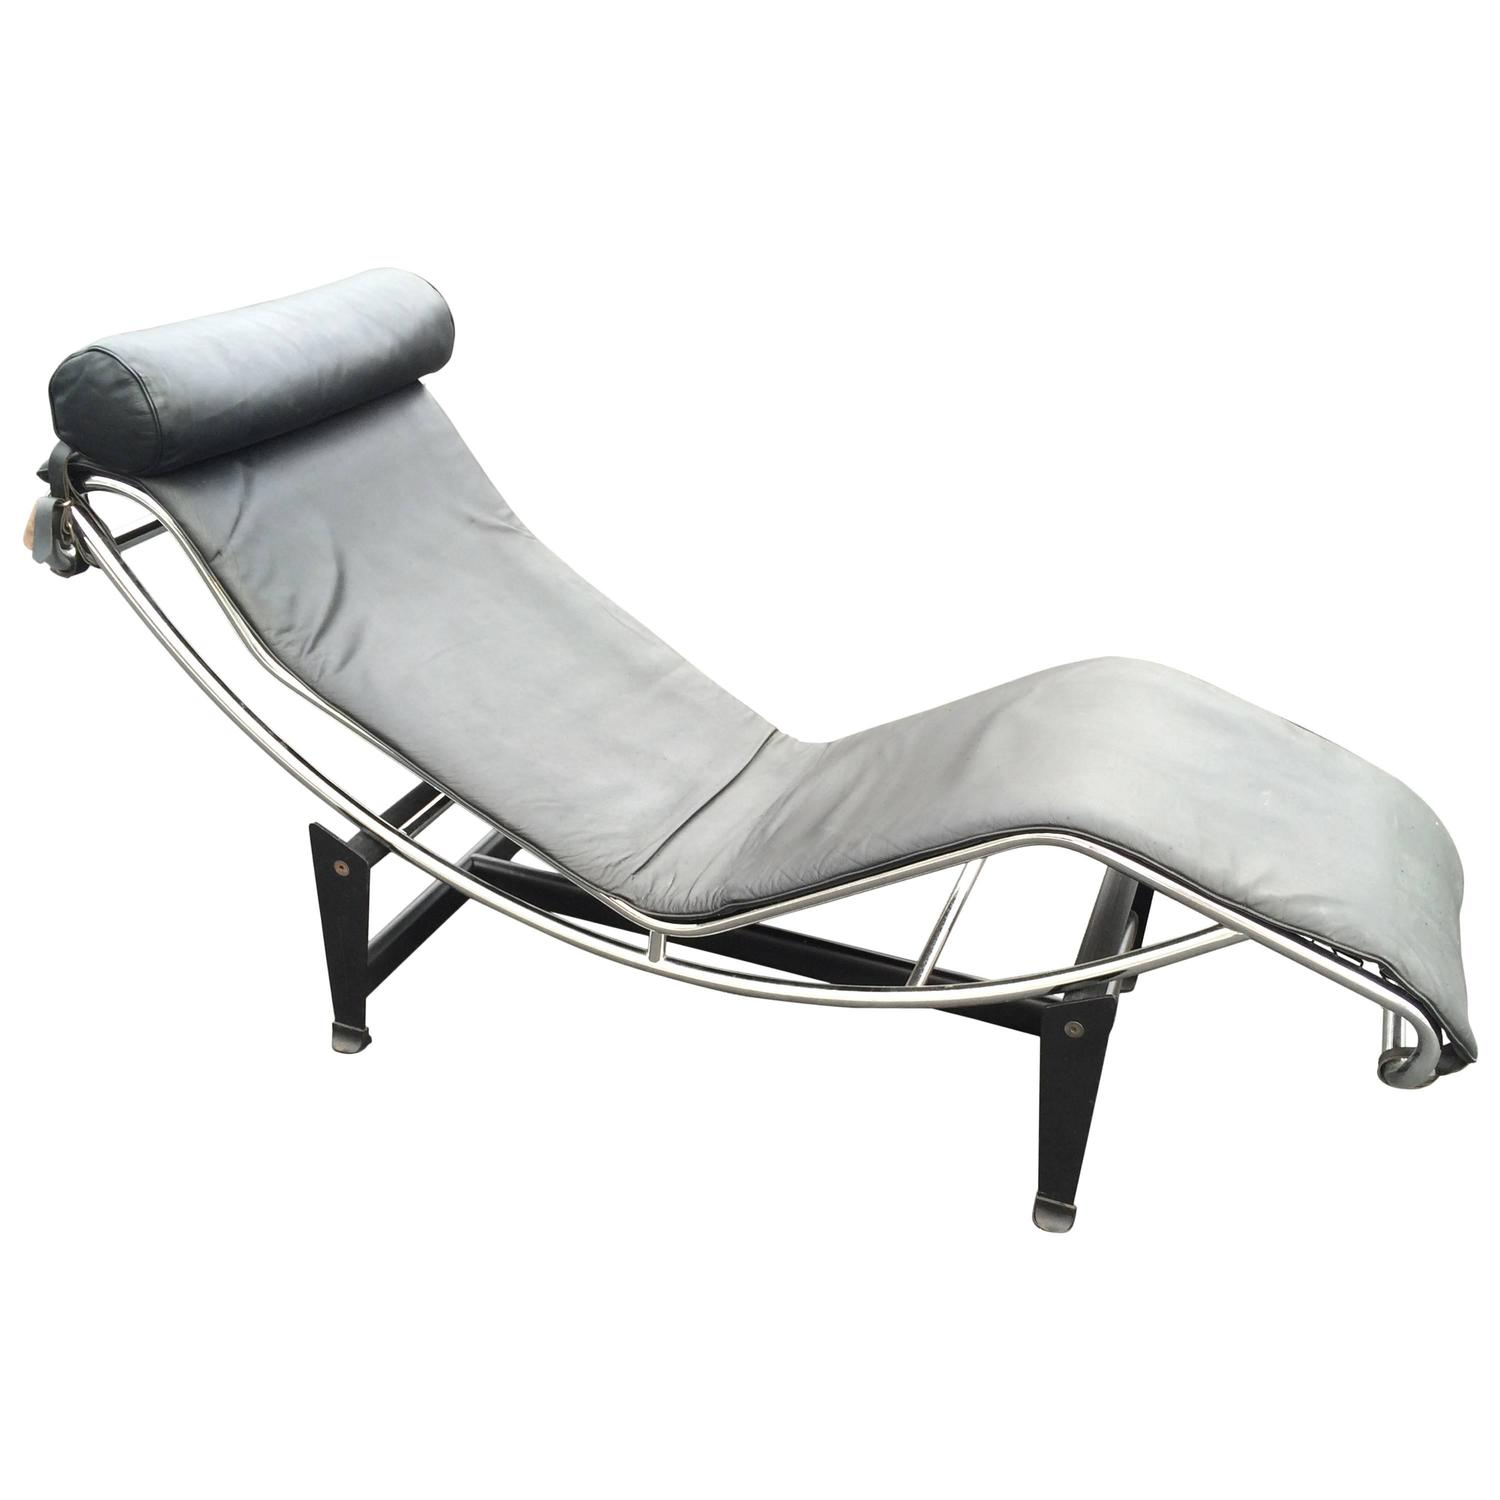 Le corbusier lc4 chaise longue in black leather at 1stdibs for Chaise longue by le corbusier